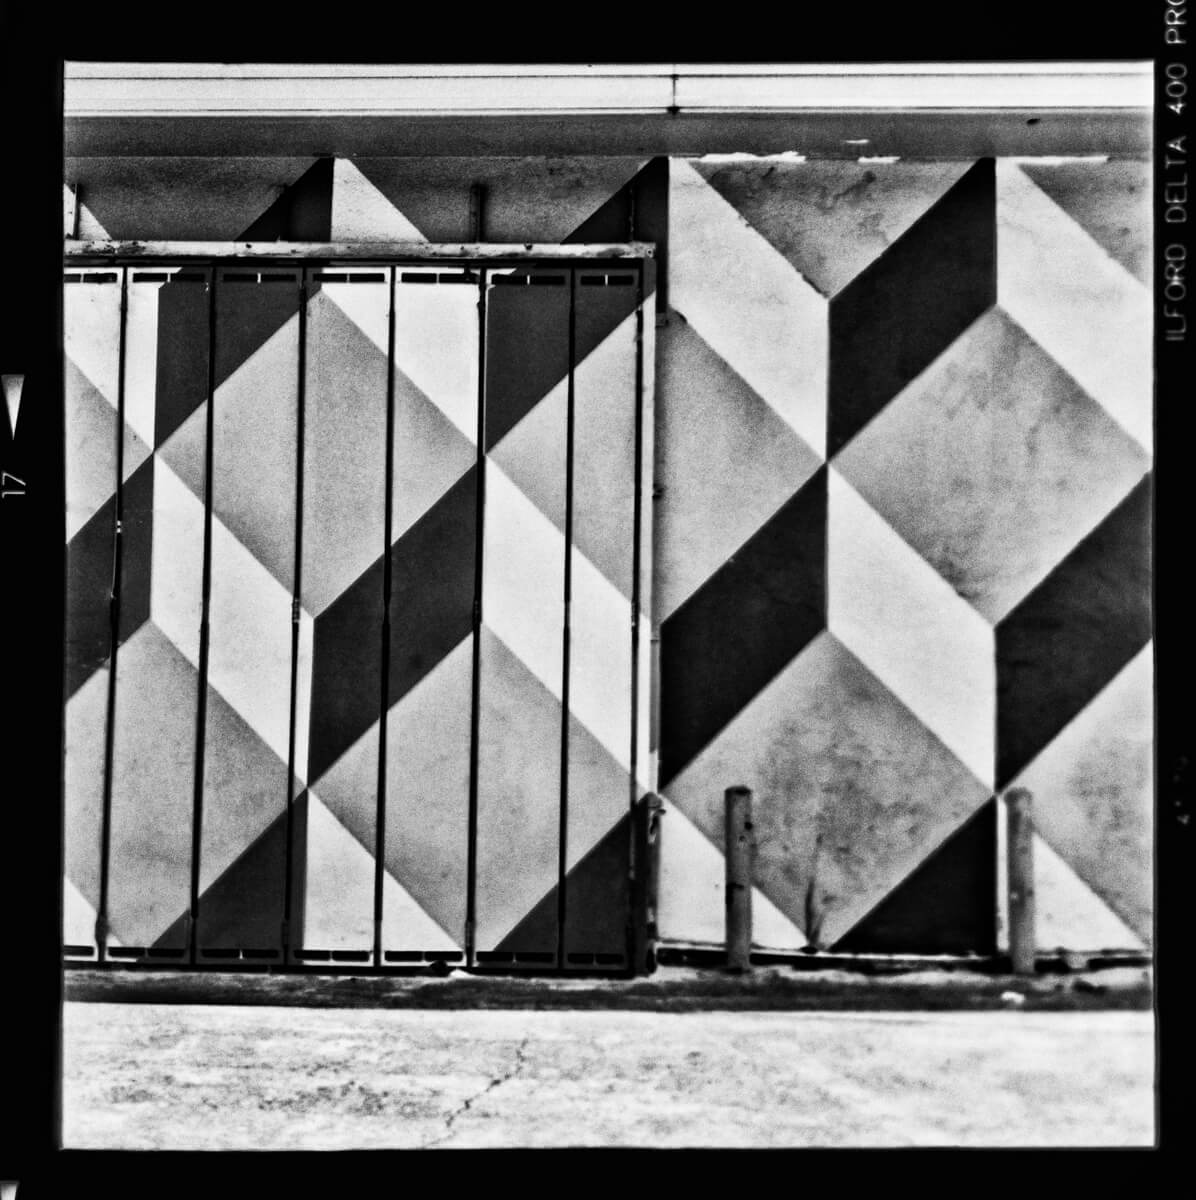 5 Frames... Of ILFORD Delta 400 Professional (120 Format / EI 400 / Yashica Mat-124G) - by Mondo Morales